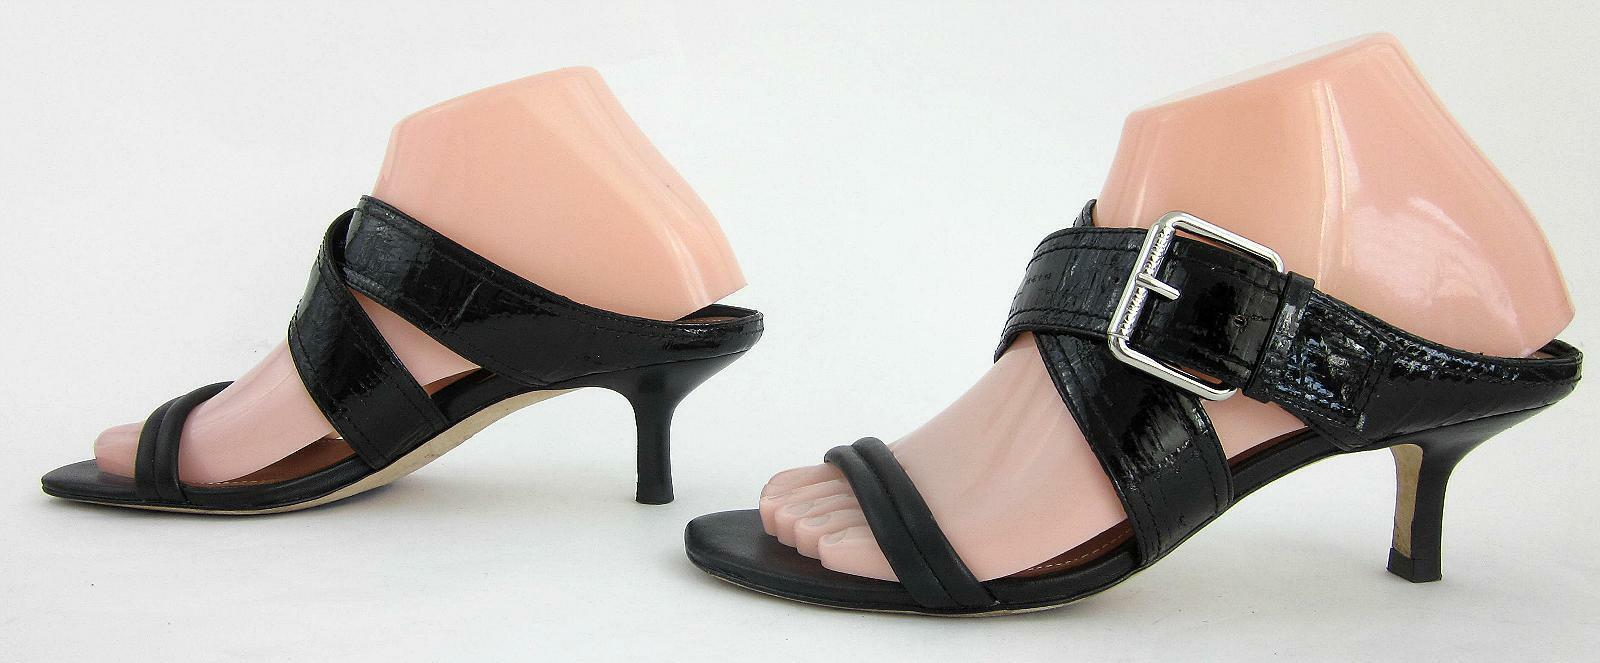 Donald J Pliner 'Mora' 'Mora' 'Mora' Criss Cross Open Toe Kitten Heel Sandals Black Leather 7M 0102a2